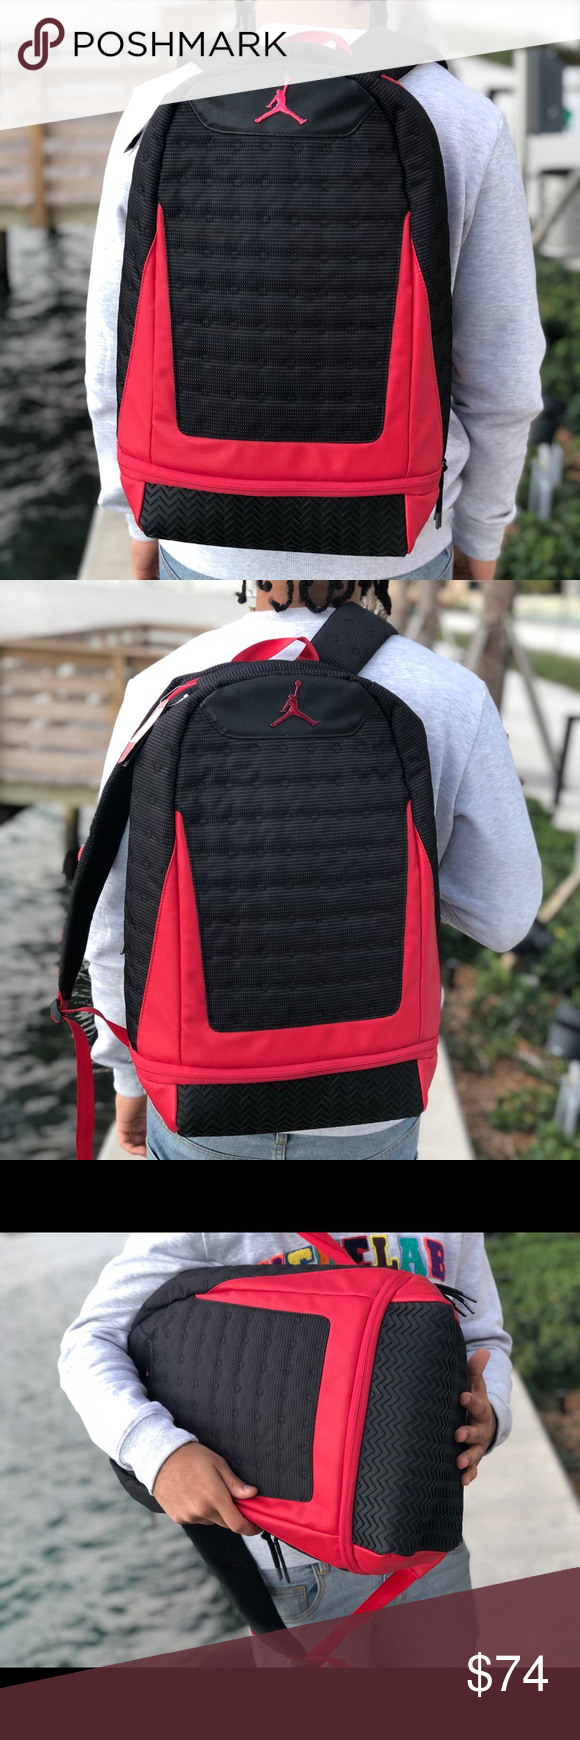 8c282b1c8cfc9 Nike Air Jordan Bred Retro 13 XIII Backpack 100% Authentic! Brand New With  Tags